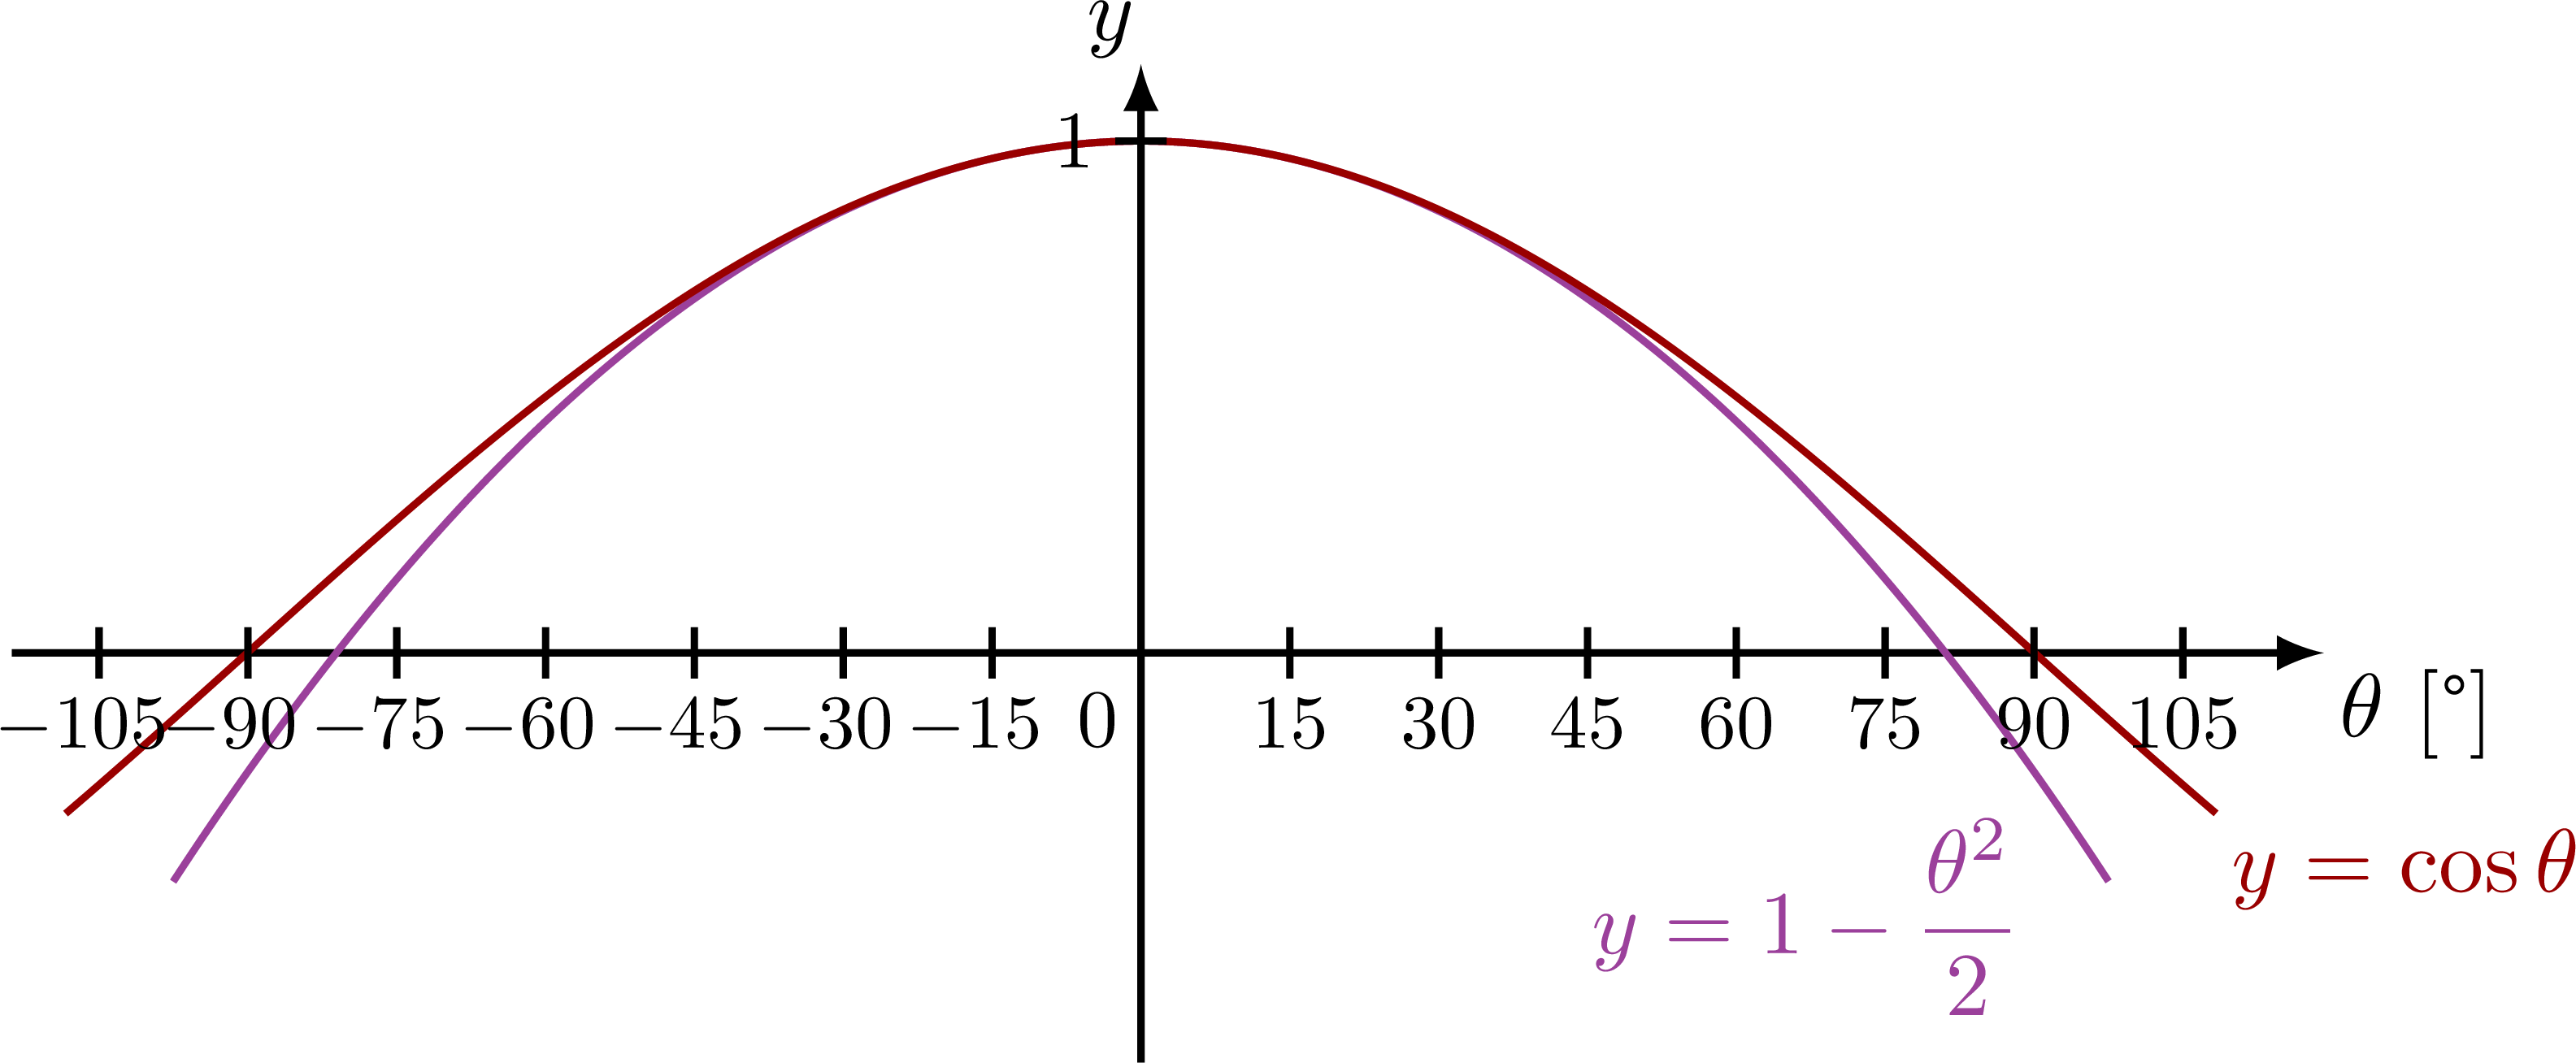 small_angle_approximation-002.png